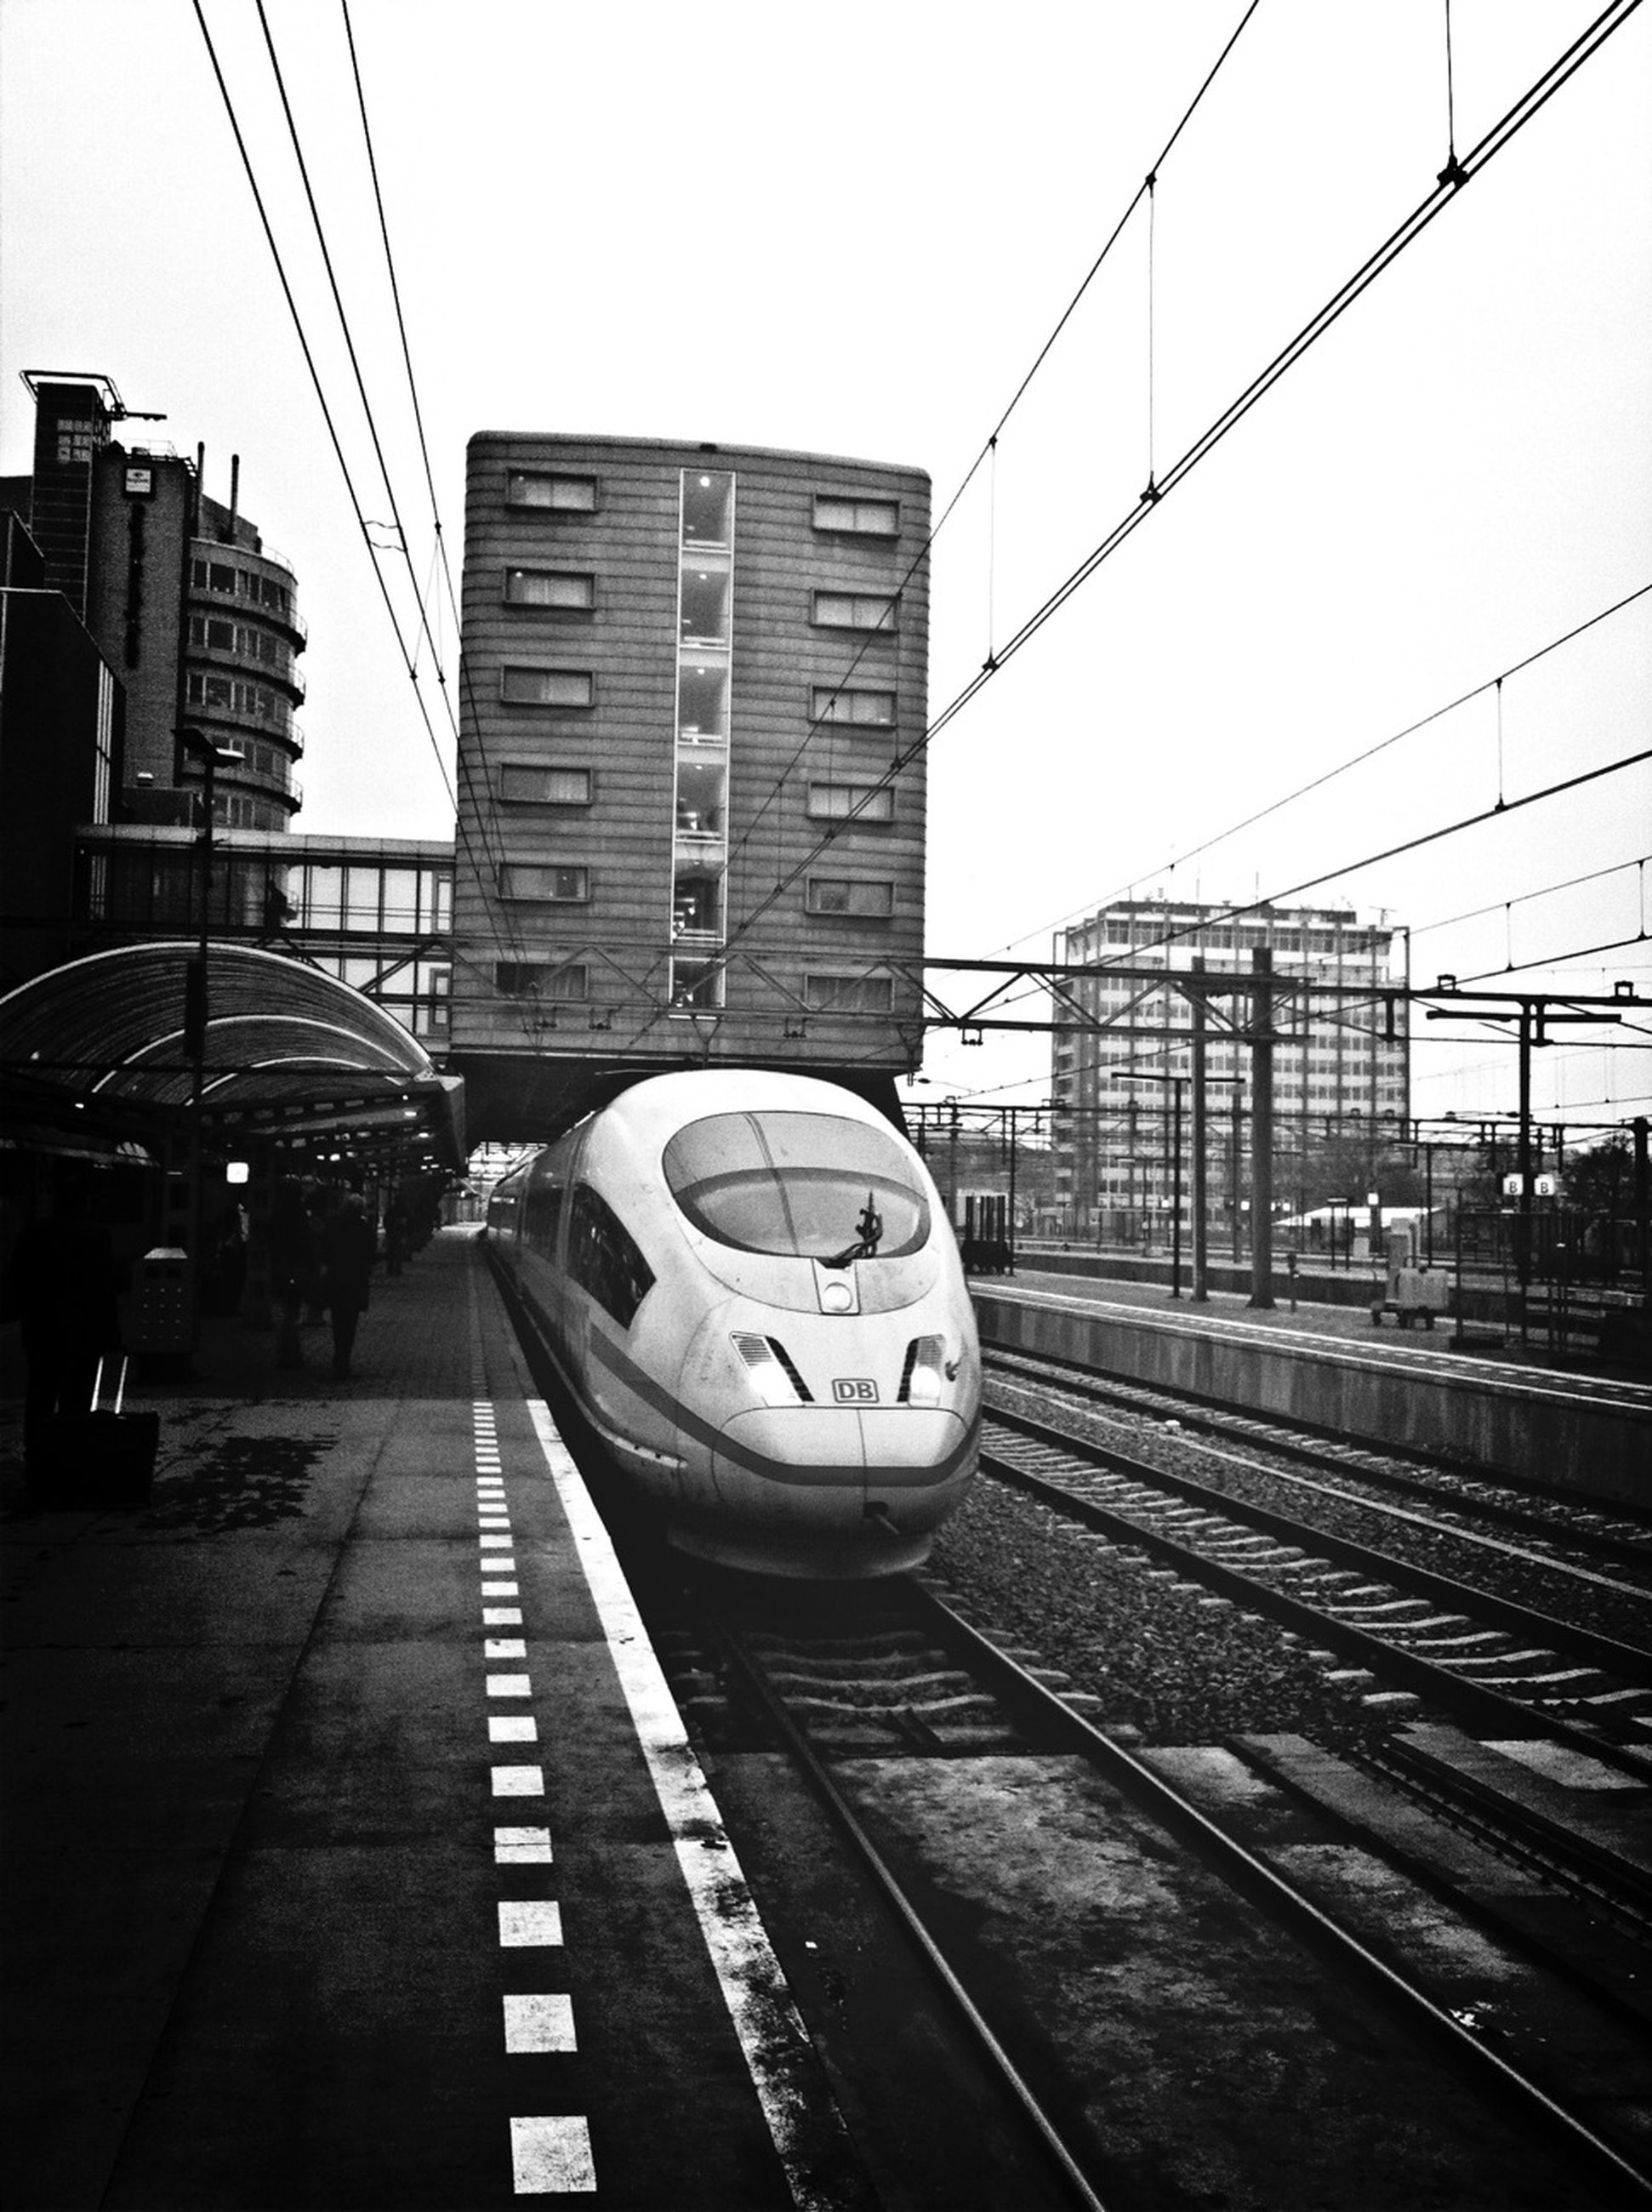 transportation, railroad track, public transportation, rail transportation, railroad station, architecture, built structure, railroad station platform, city, building exterior, mode of transport, clear sky, train - vehicle, travel, city life, connection, train, public transport, passenger train, on the move